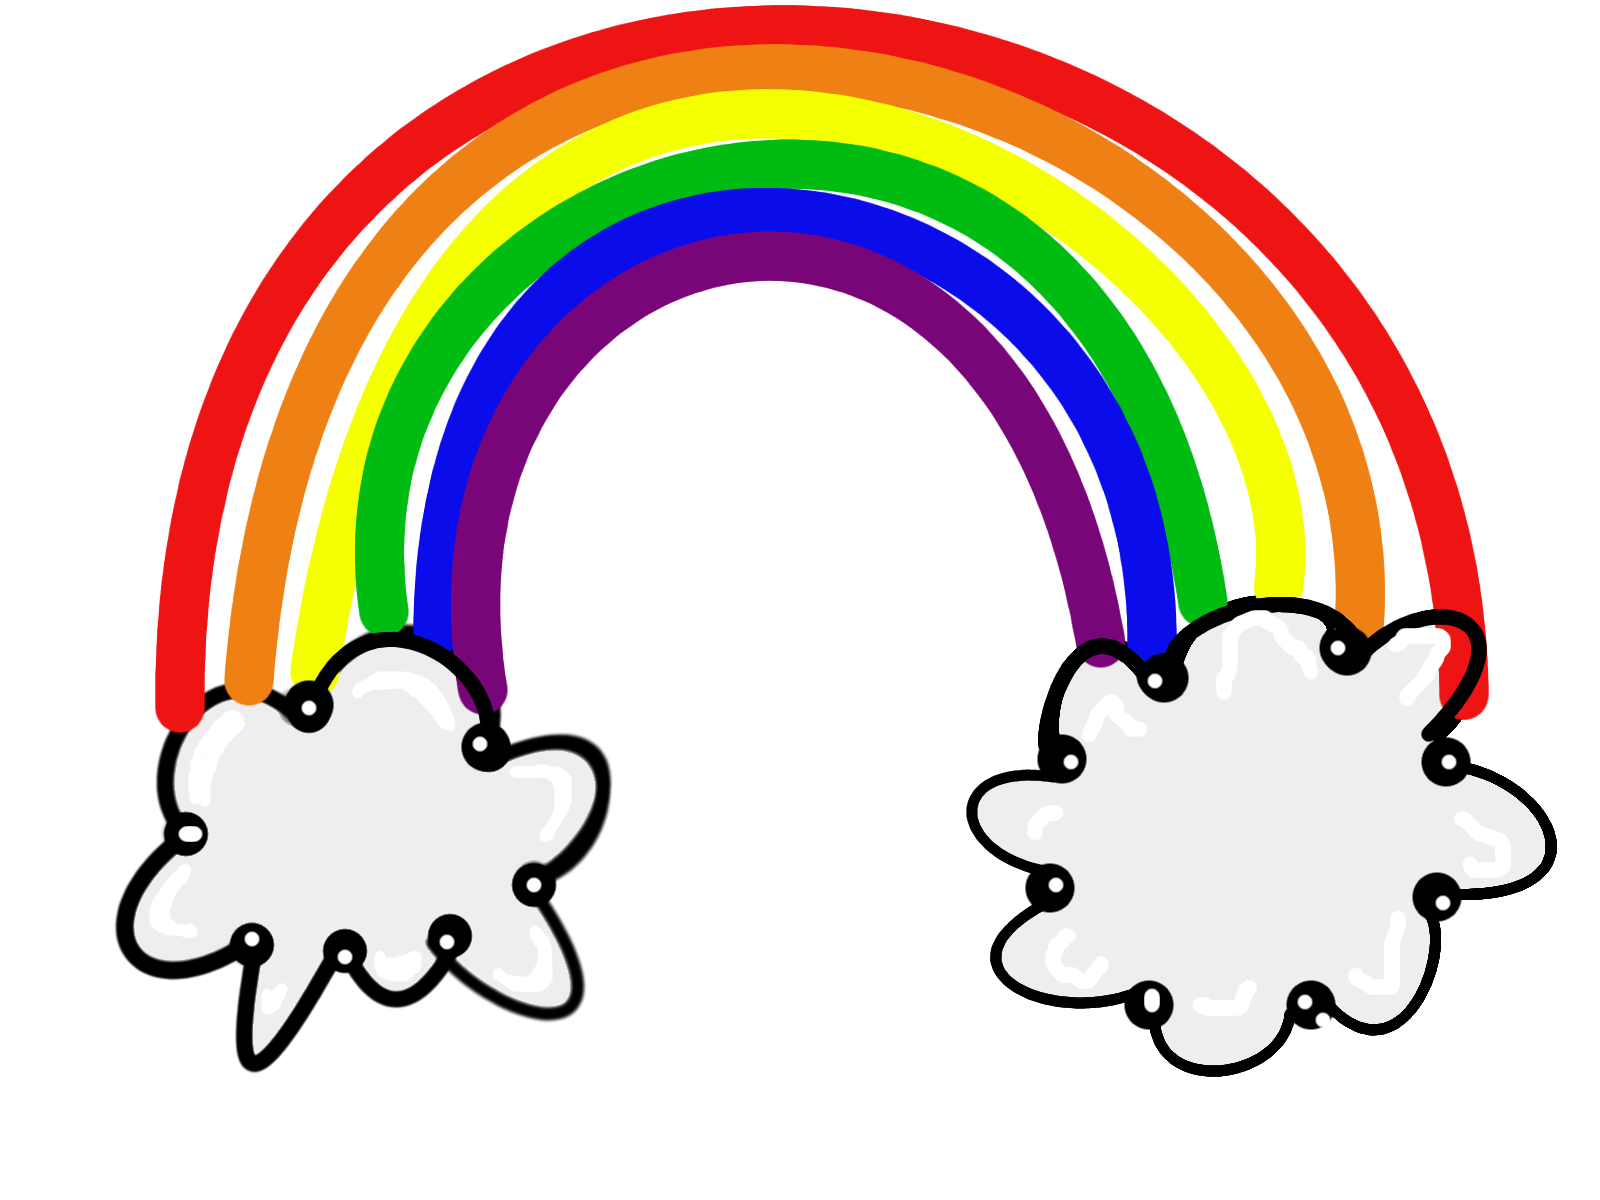 rainbow illustrations and clipart - photo #14